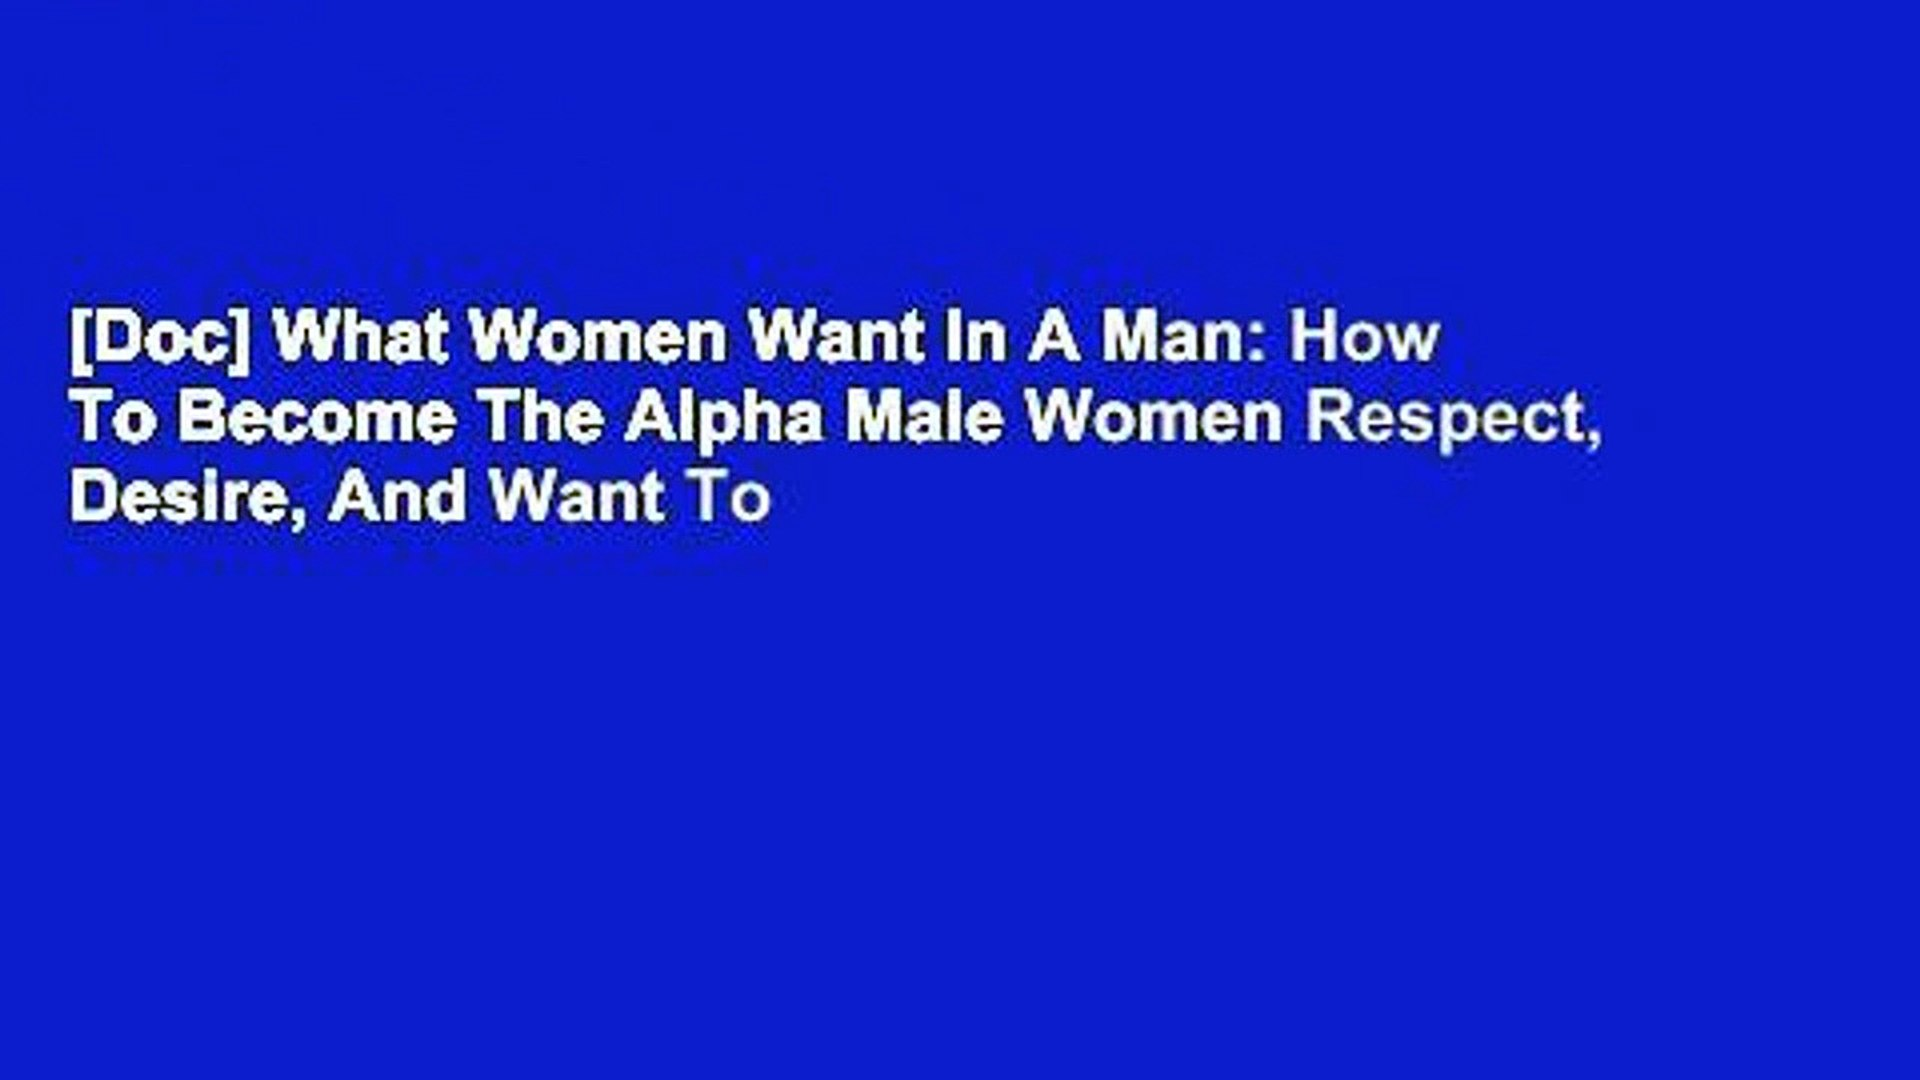 What woman wants in a man